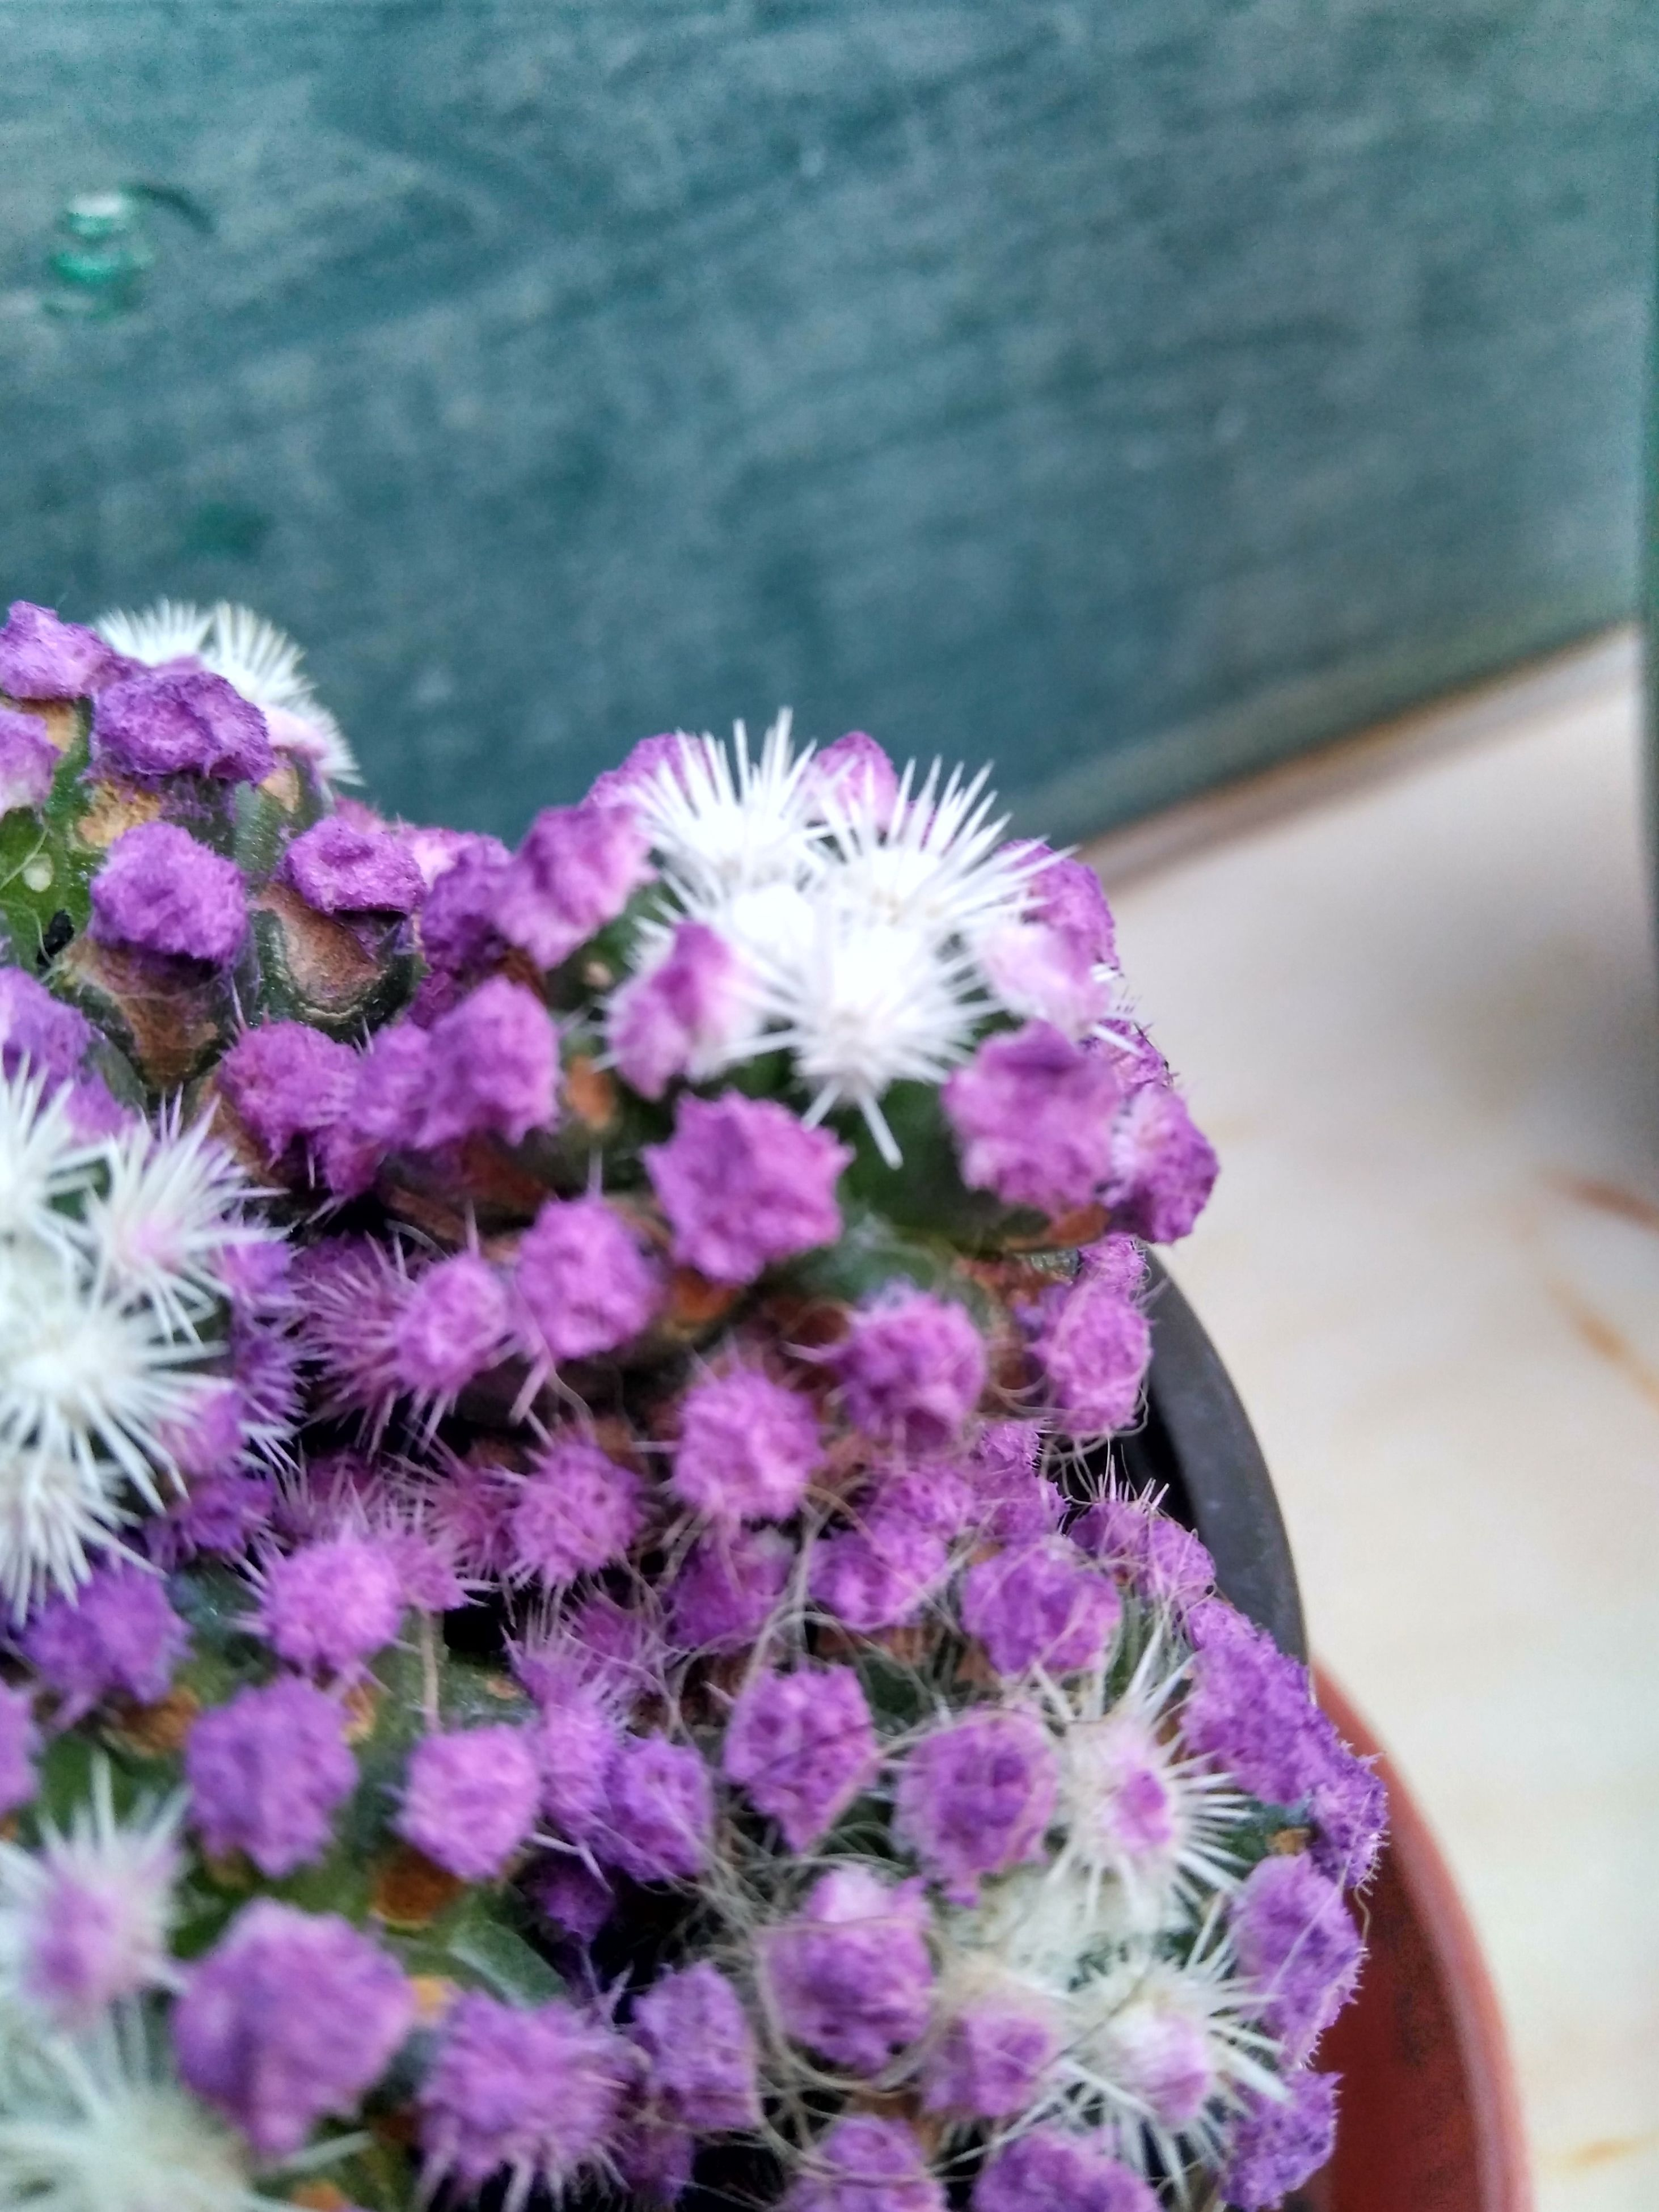 flower, purple, fragility, nature, growth, beauty in nature, petal, day, freshness, no people, plant, close-up, outdoors, flower head